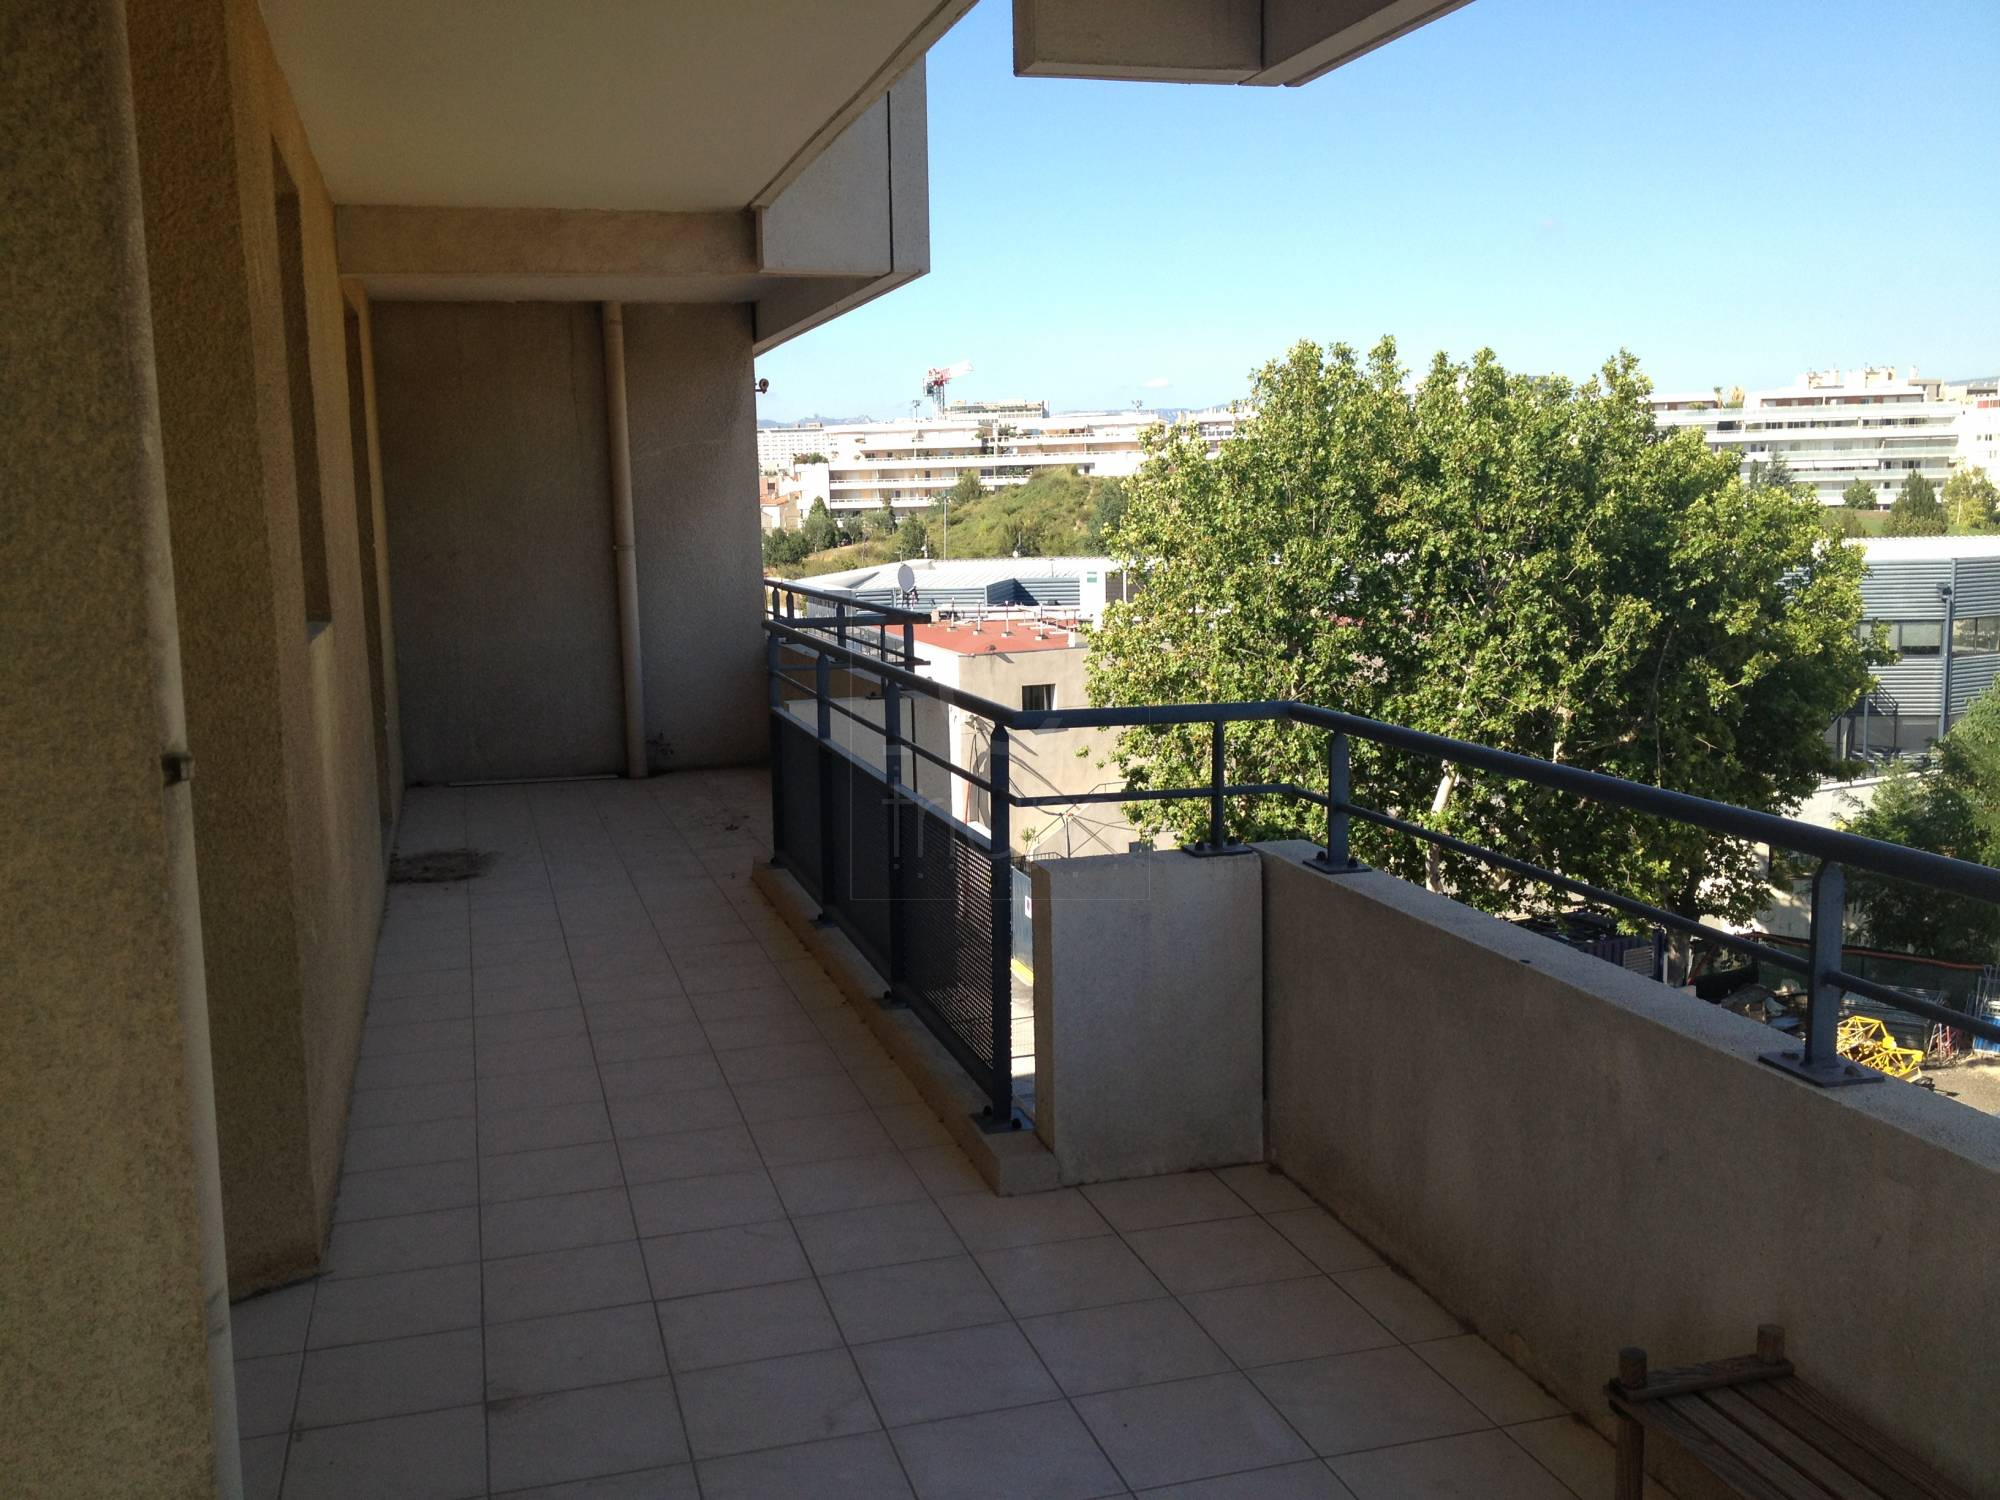 Location appartement t2 f2 marseille 8eme prado rouet for Location appartement marseille terrasse